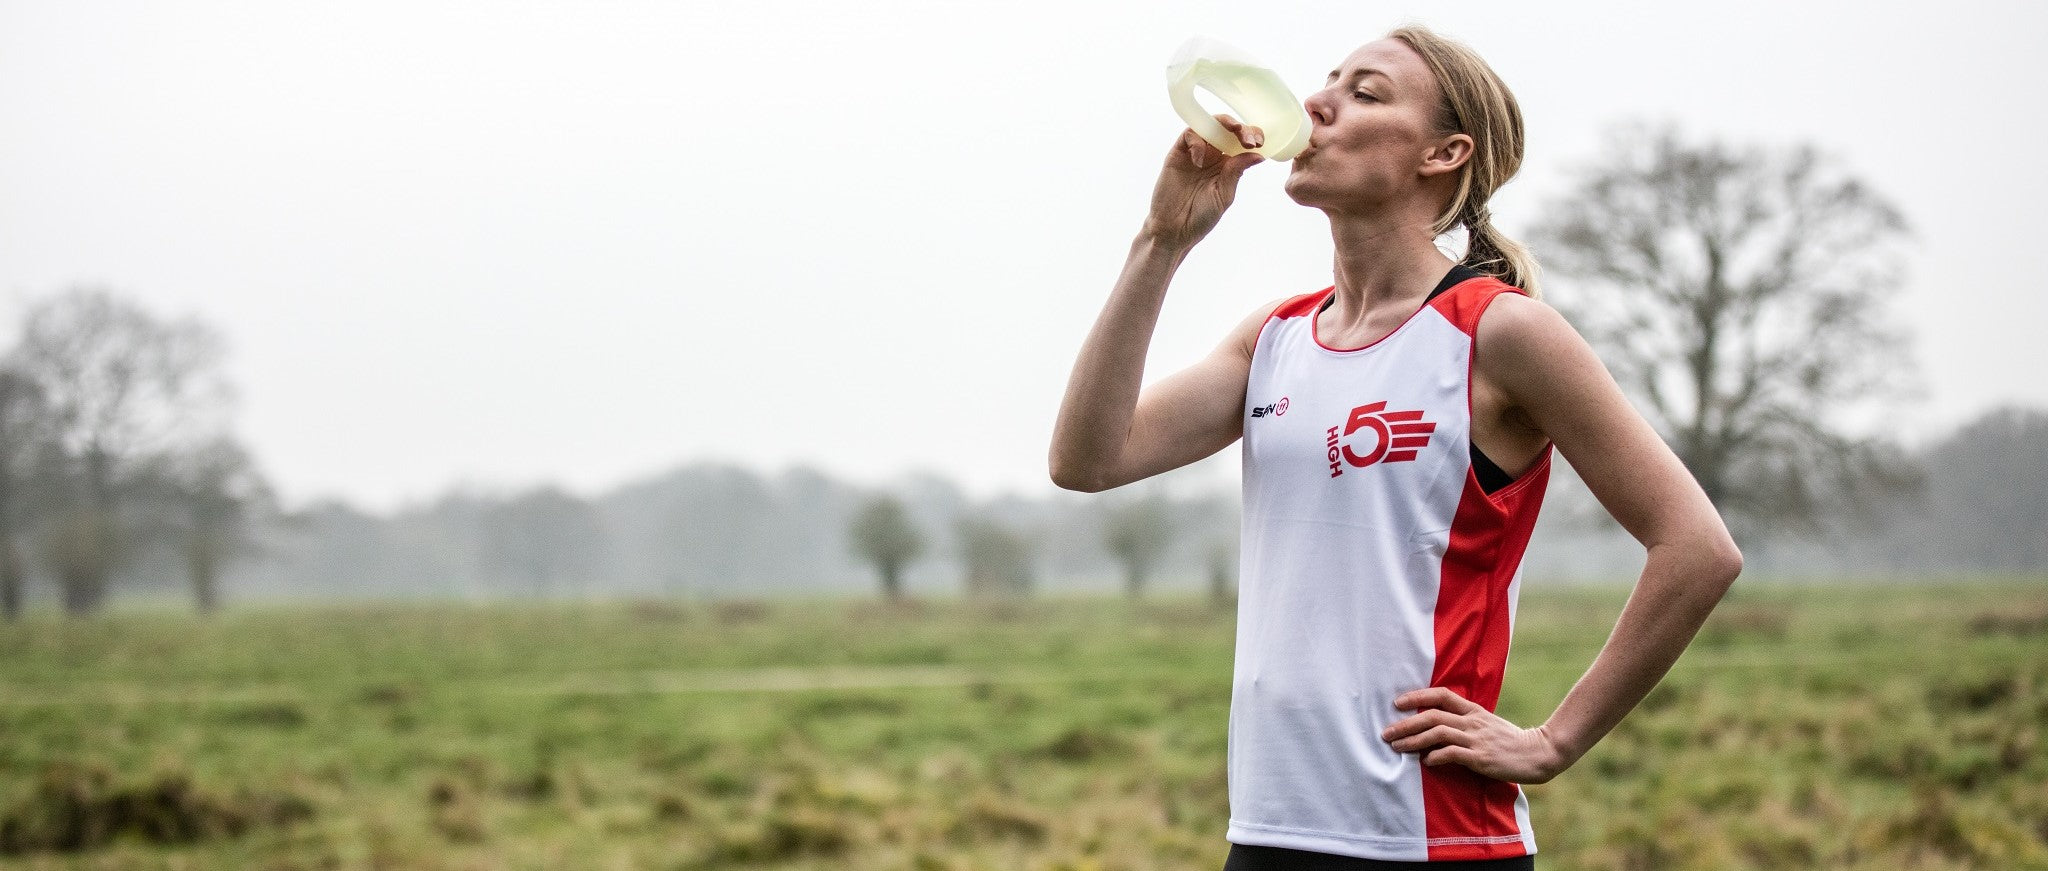 Runner drinking from HIGH5 bottle